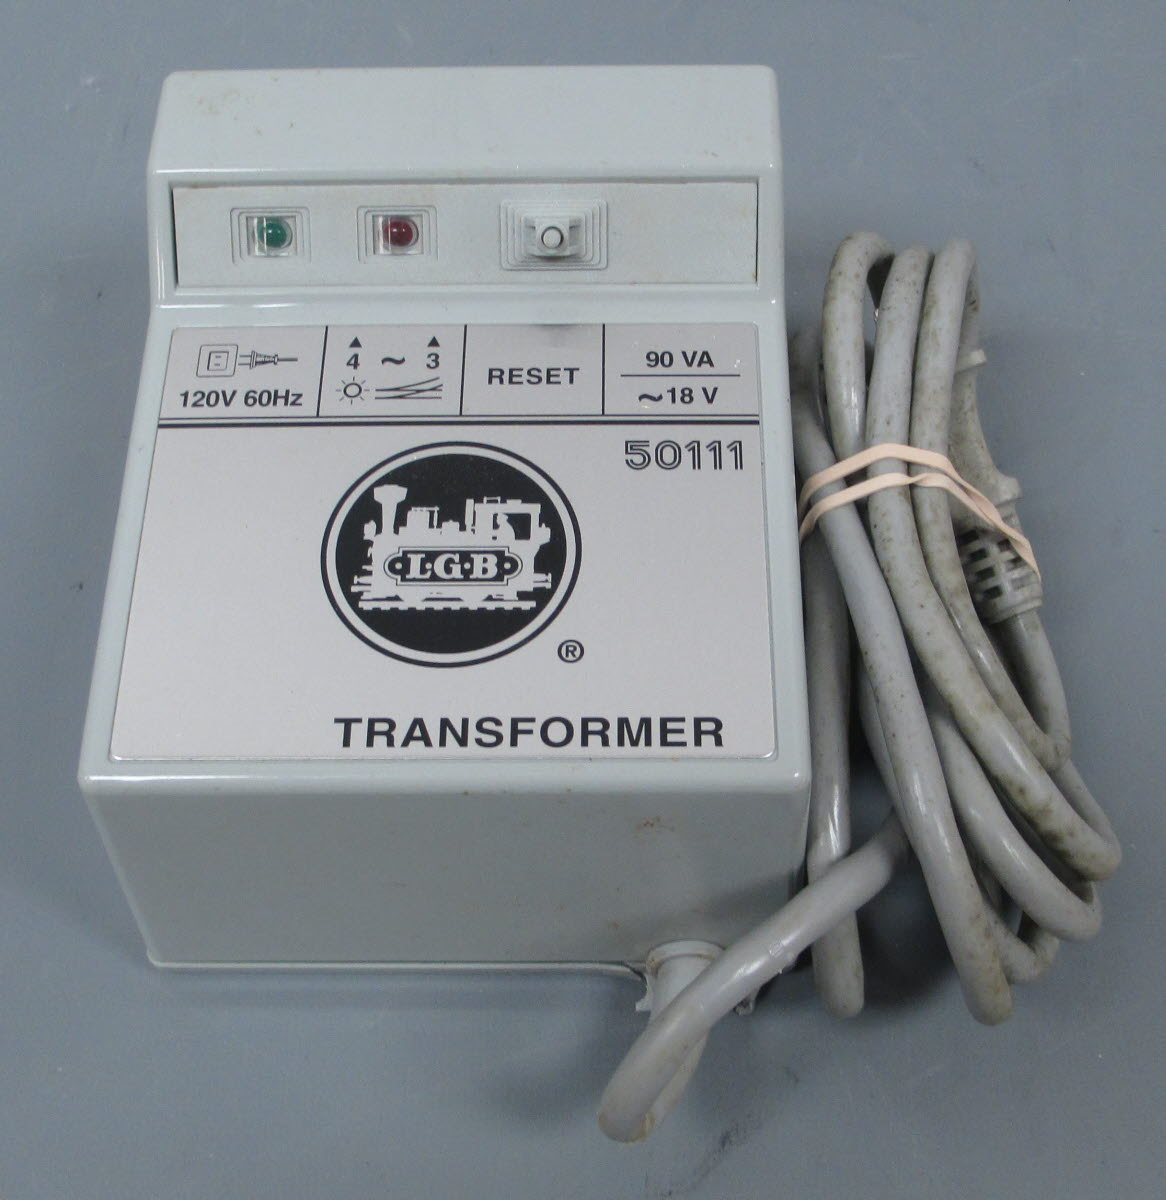 Buy Lgb 50111 High Power Output 6 Amp 120 Volt Ac Transformer Wiring Photo From Seller